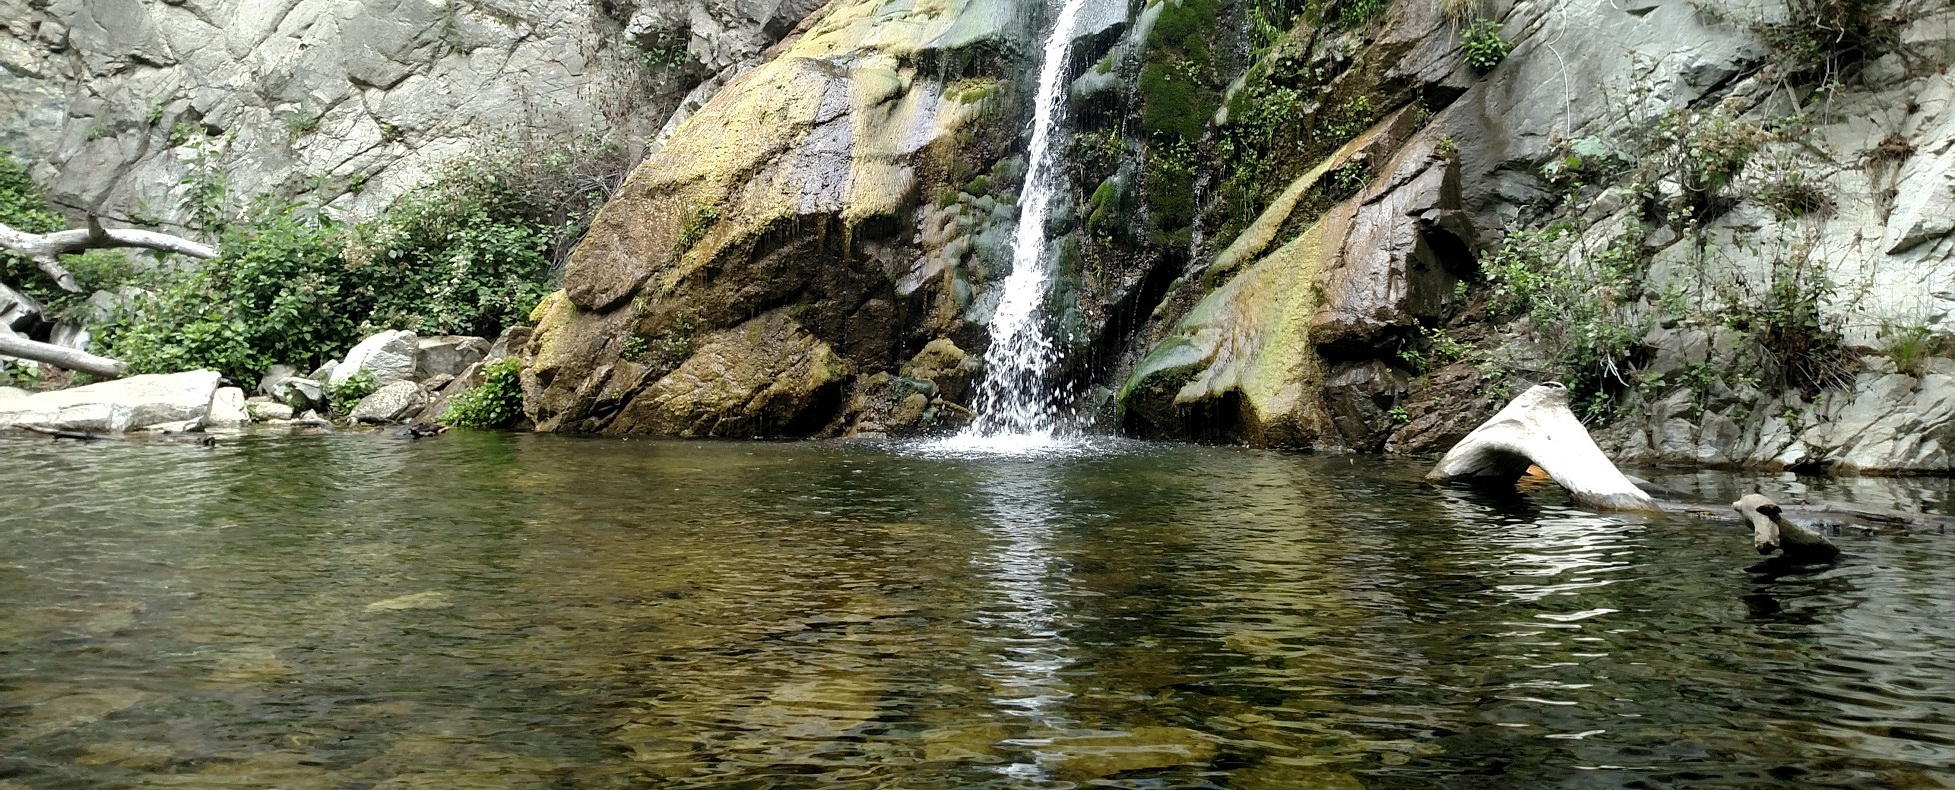 Sturtevant Falls, Angeles National Forest